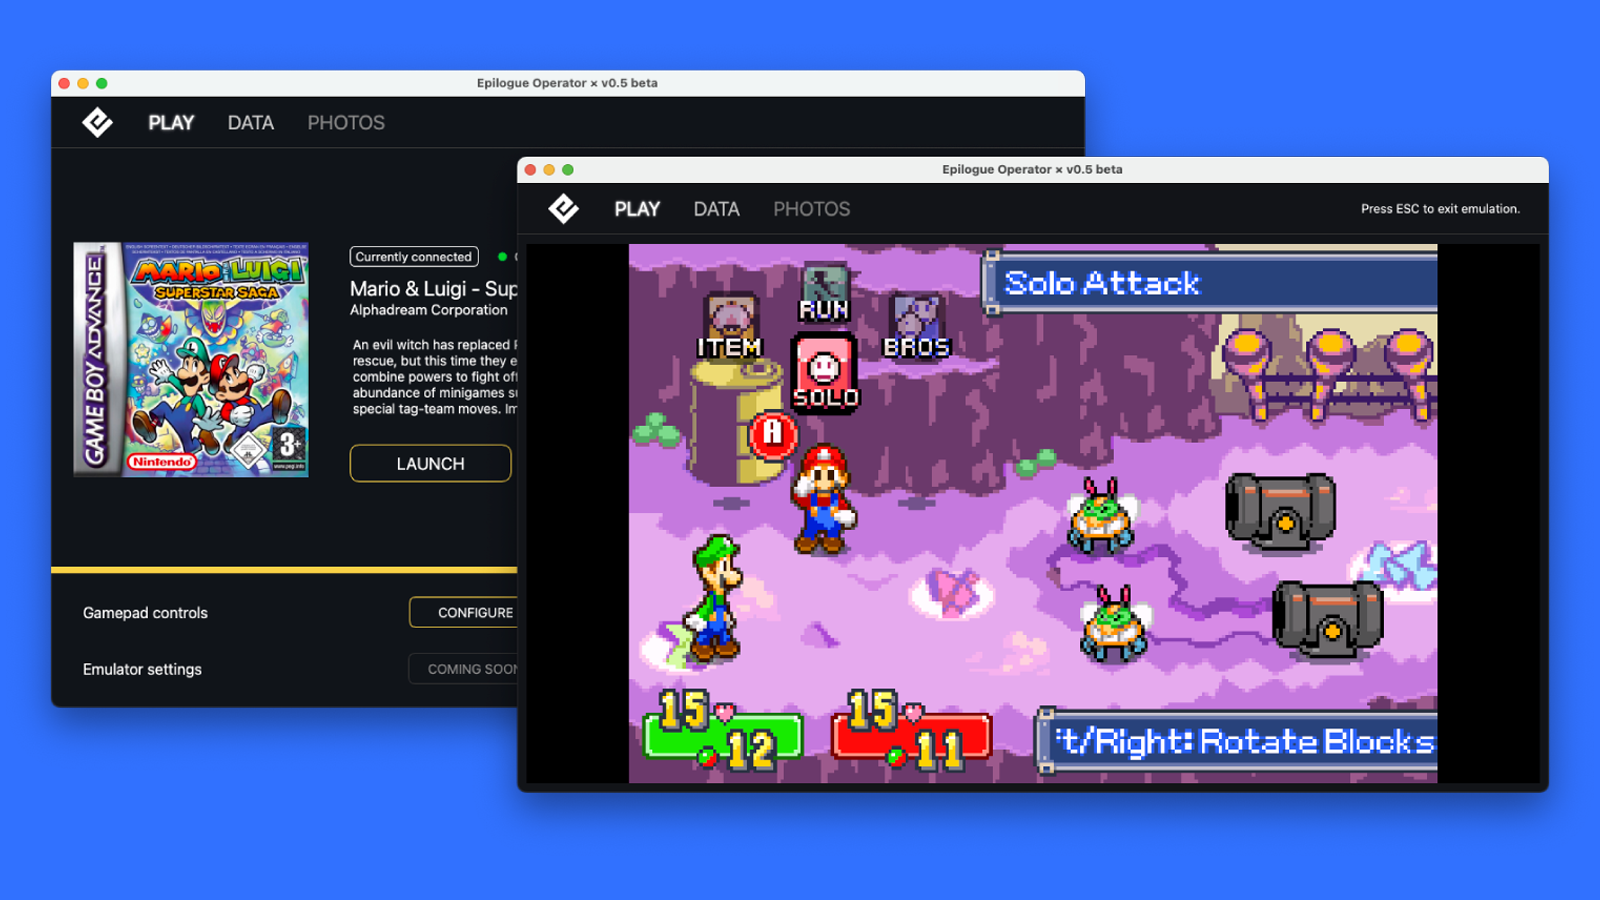 The emulator's game load screen and another screen with a game open